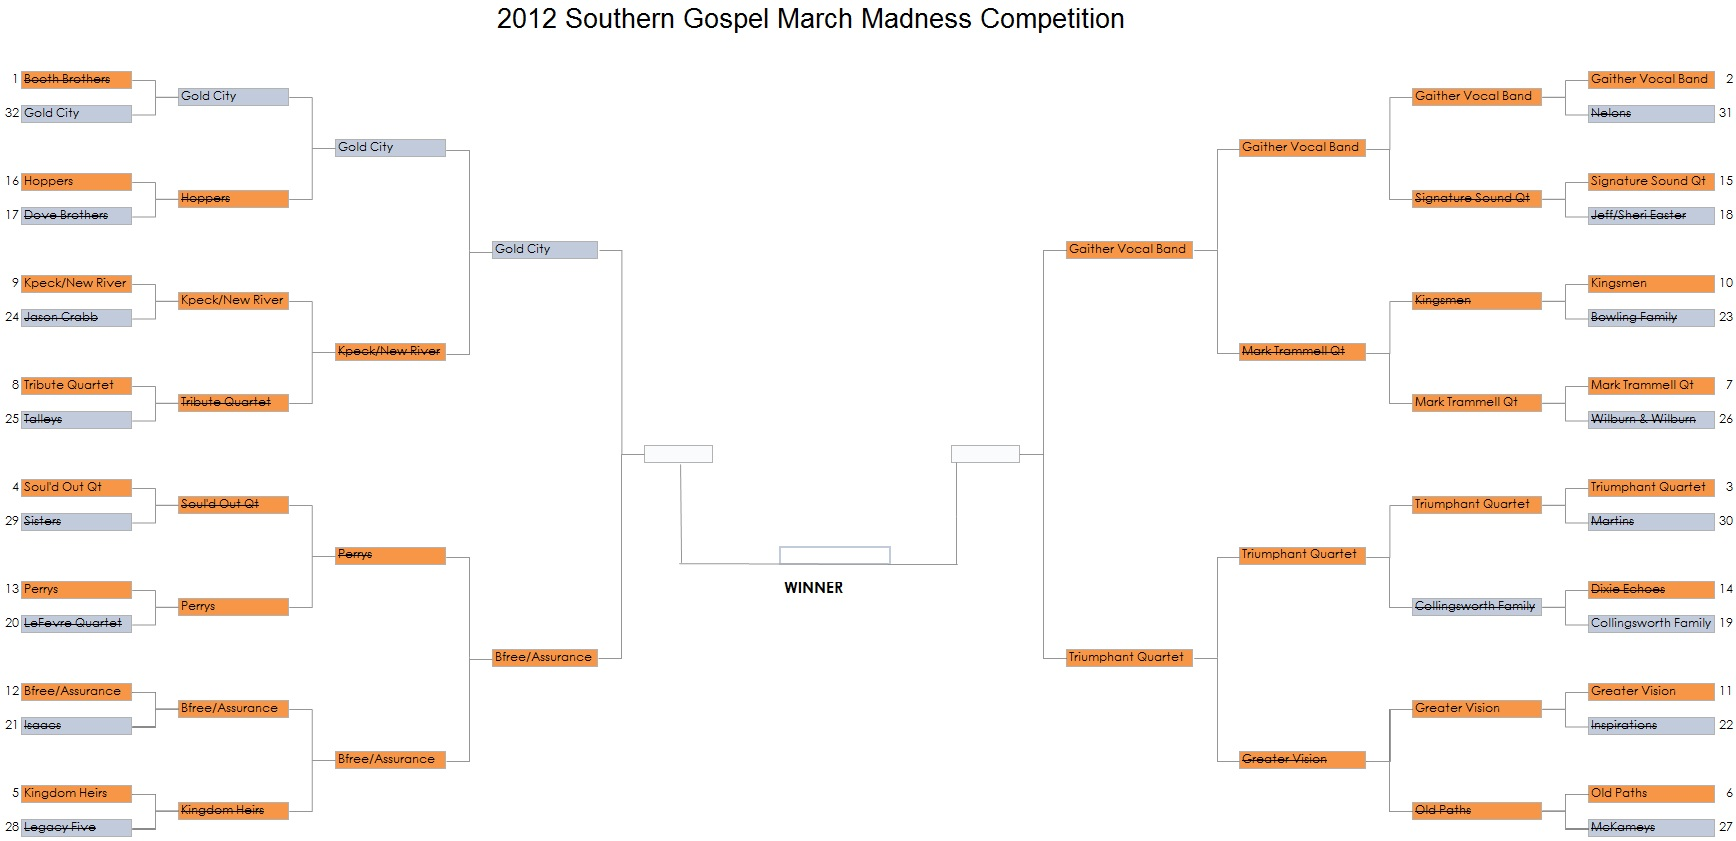 March madness 2012 sex tape edition 6